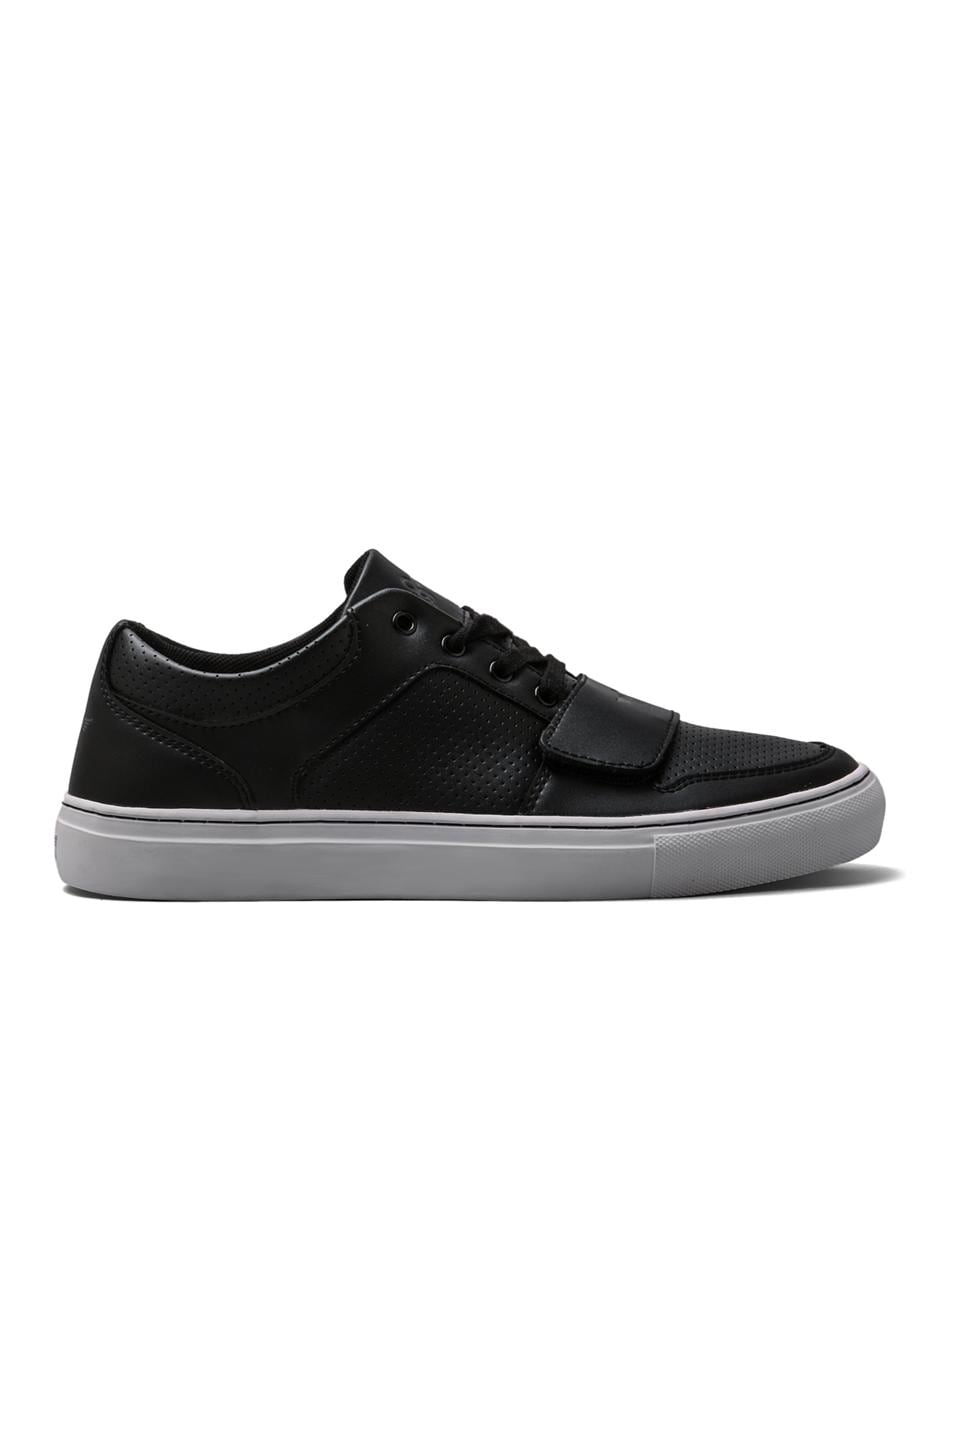 Creative Recreation Cesario Lo X in Black Leather